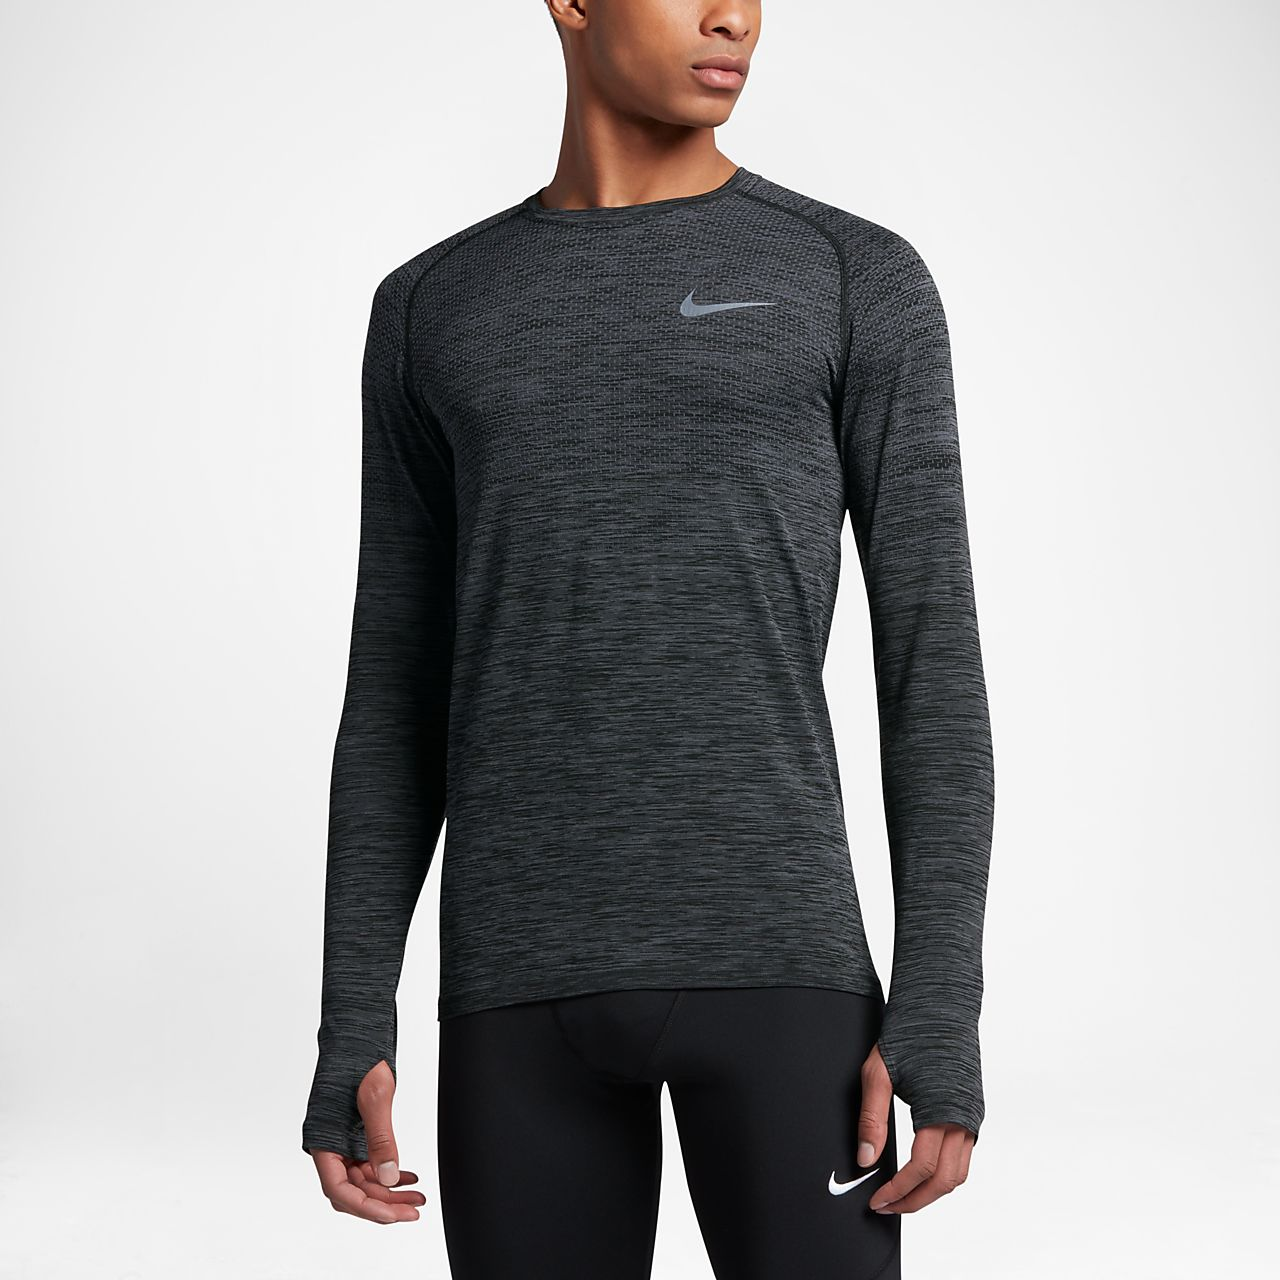 Mens nike long sleeve shirt south park t shirts for Best athletic dress shirts